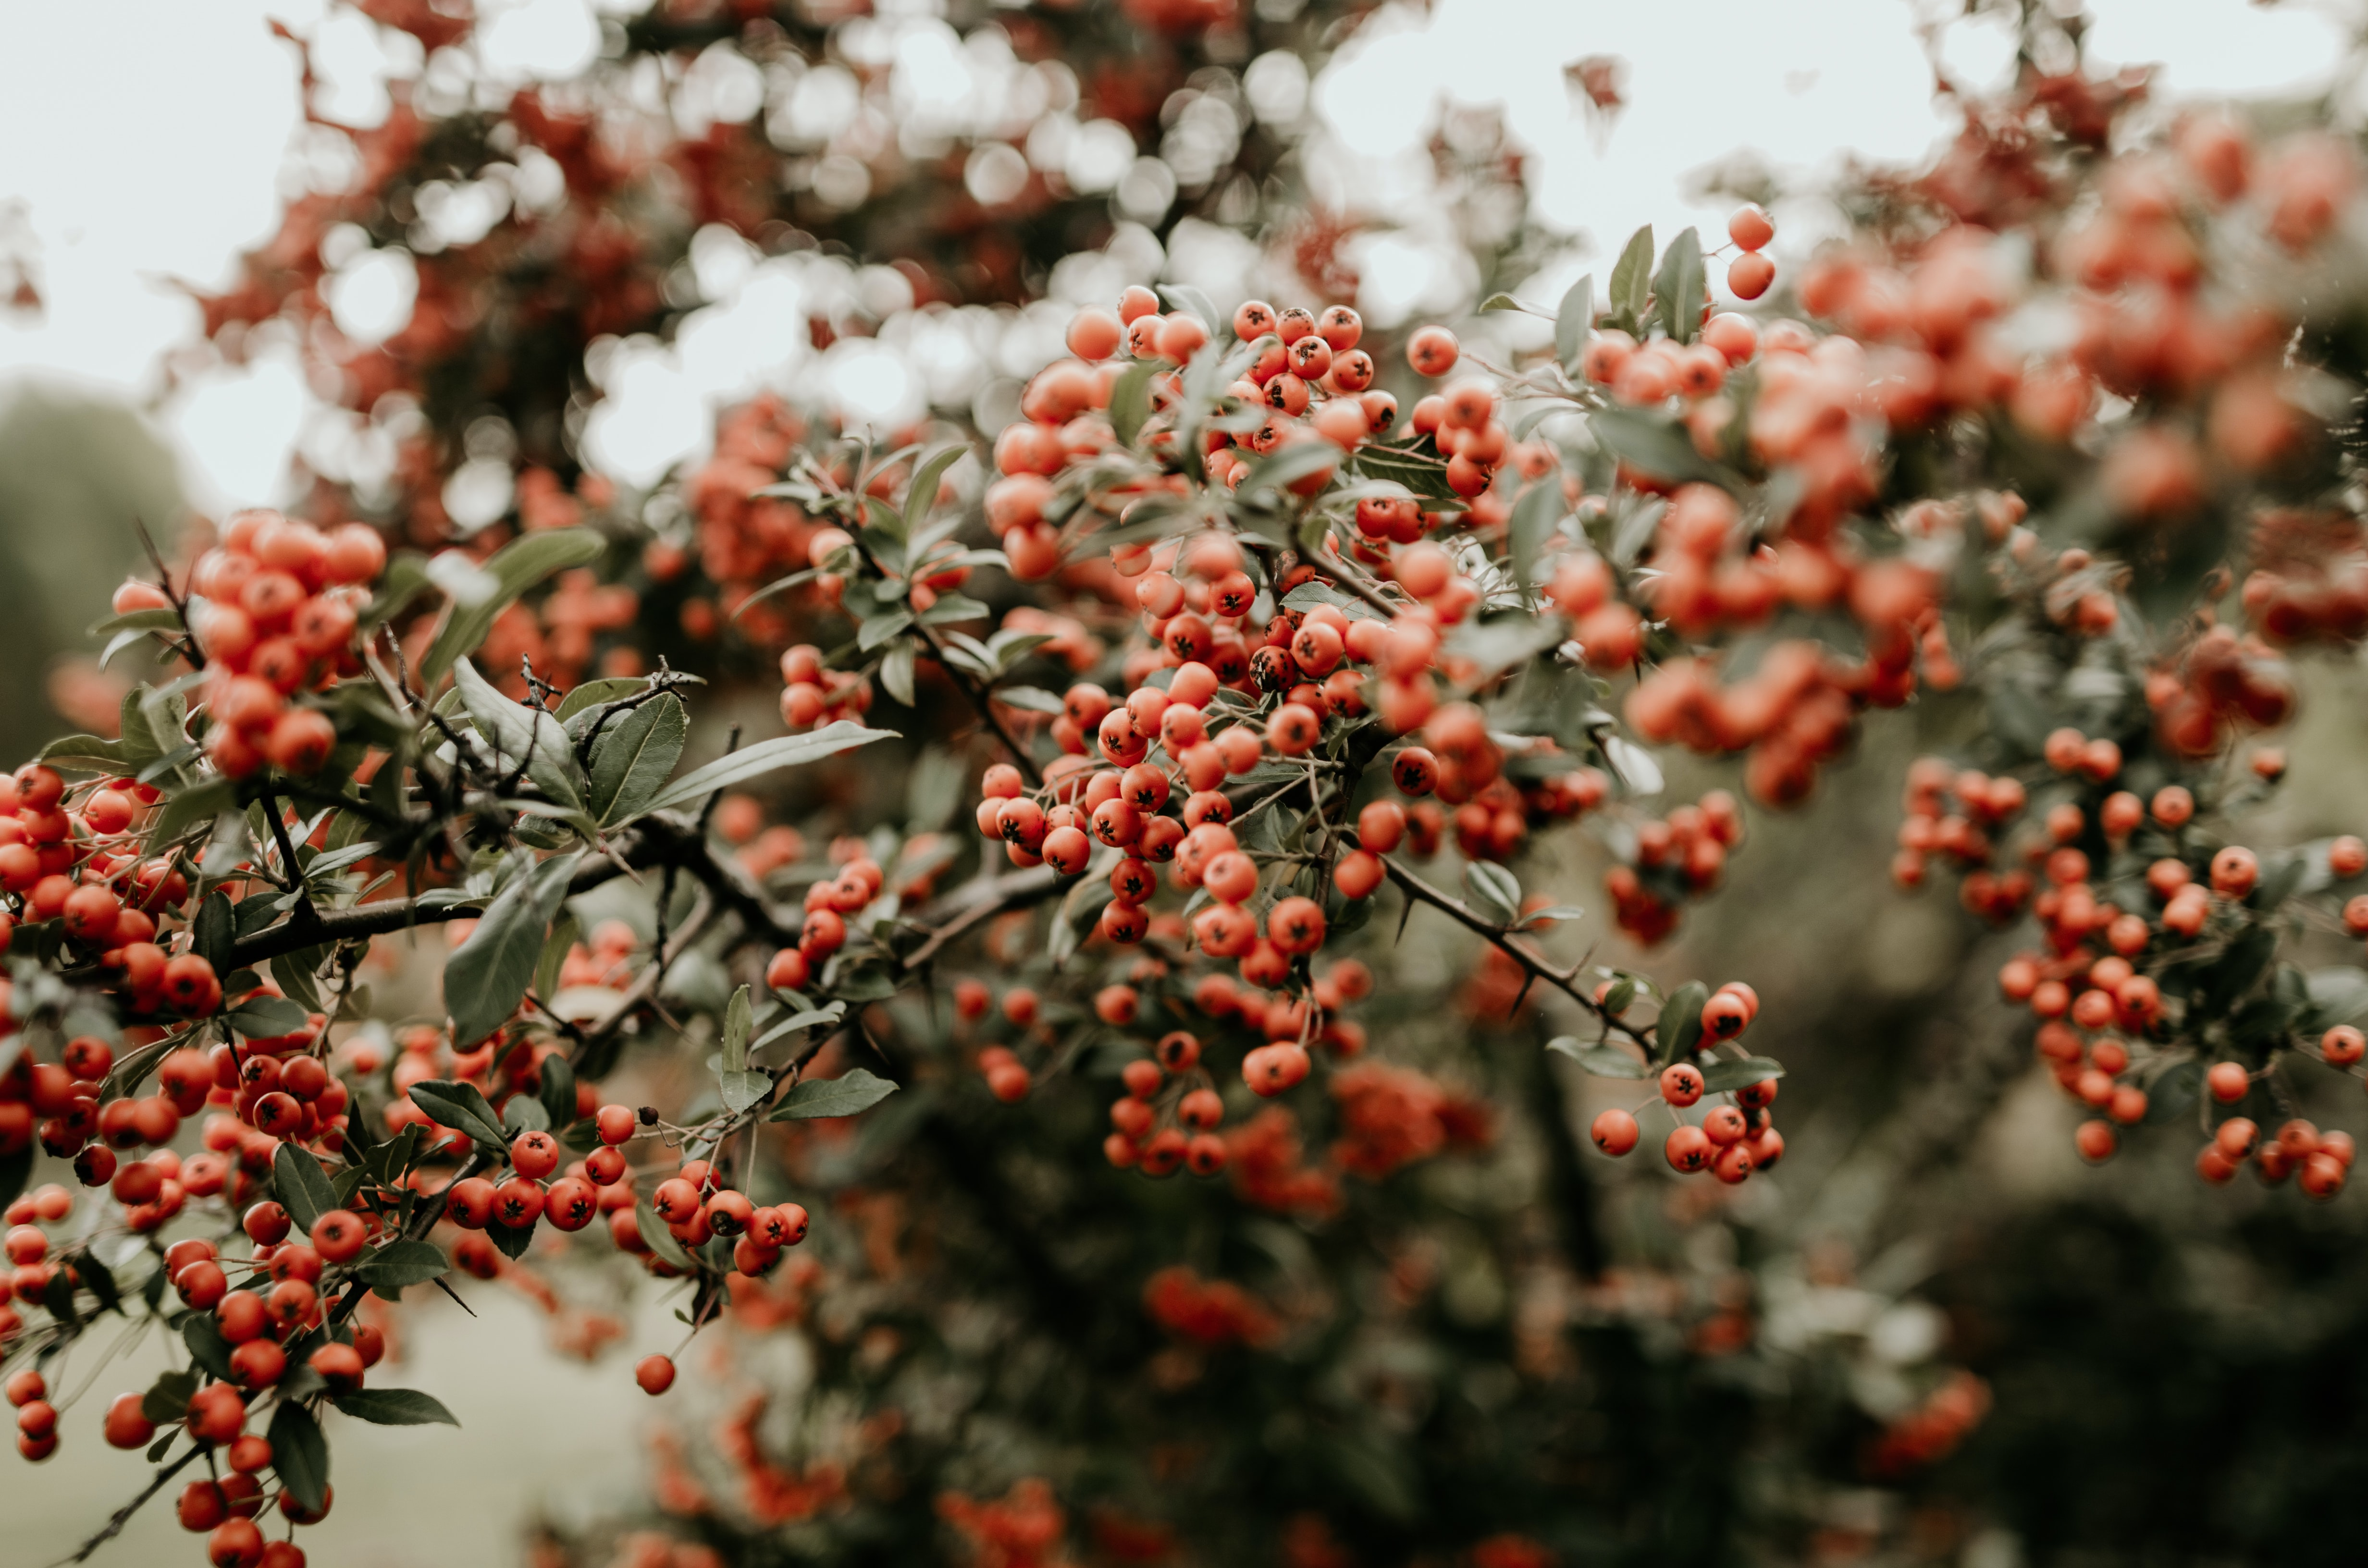 red fruits on tree branch